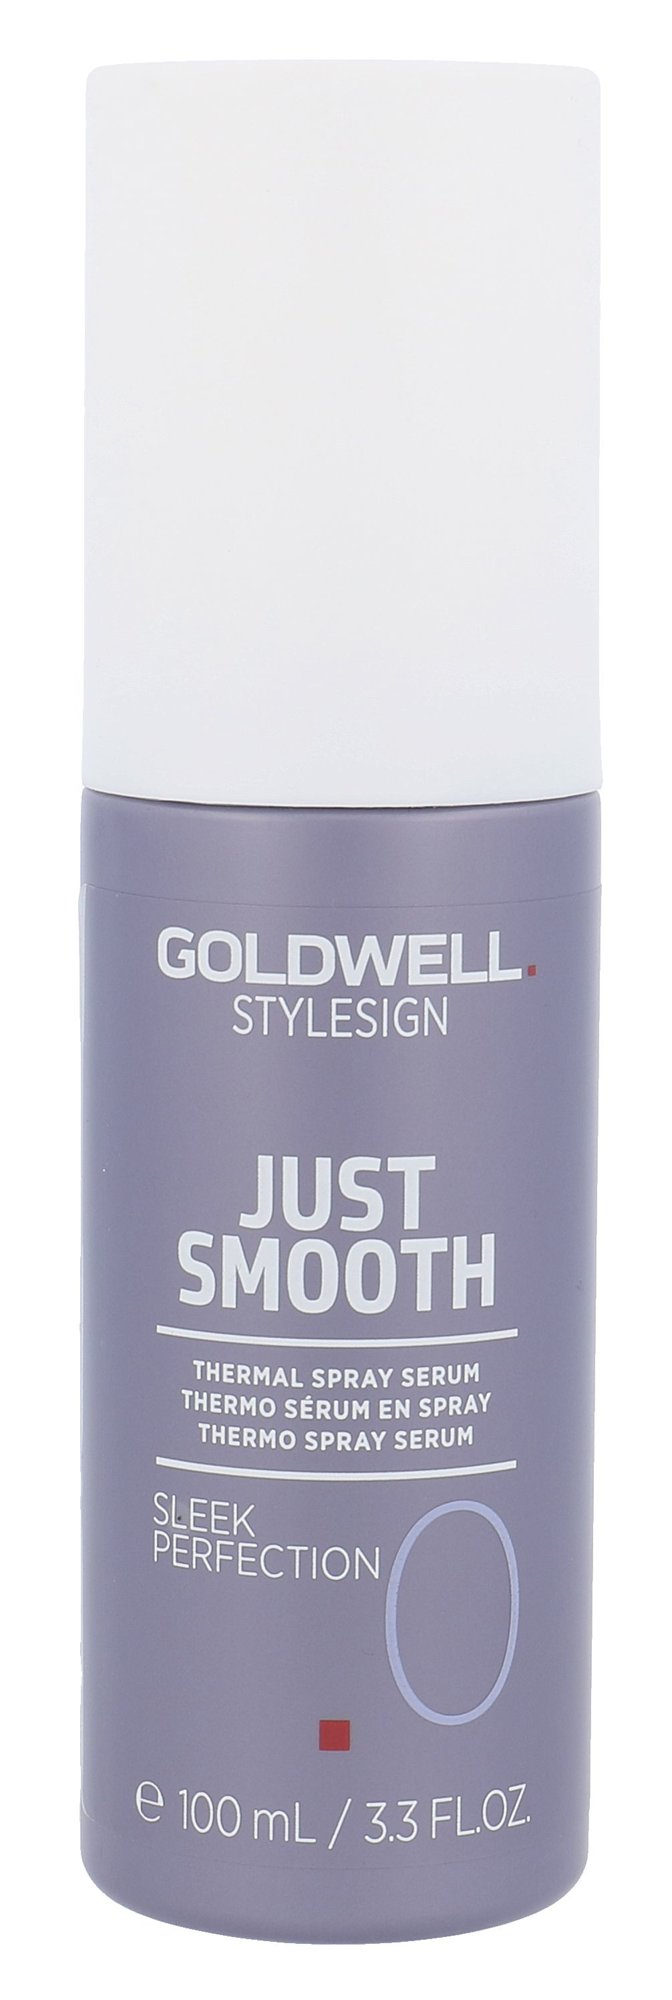 Goldwell Style Sign Just Smooth Sleek Perfection Cosmetic 100ml